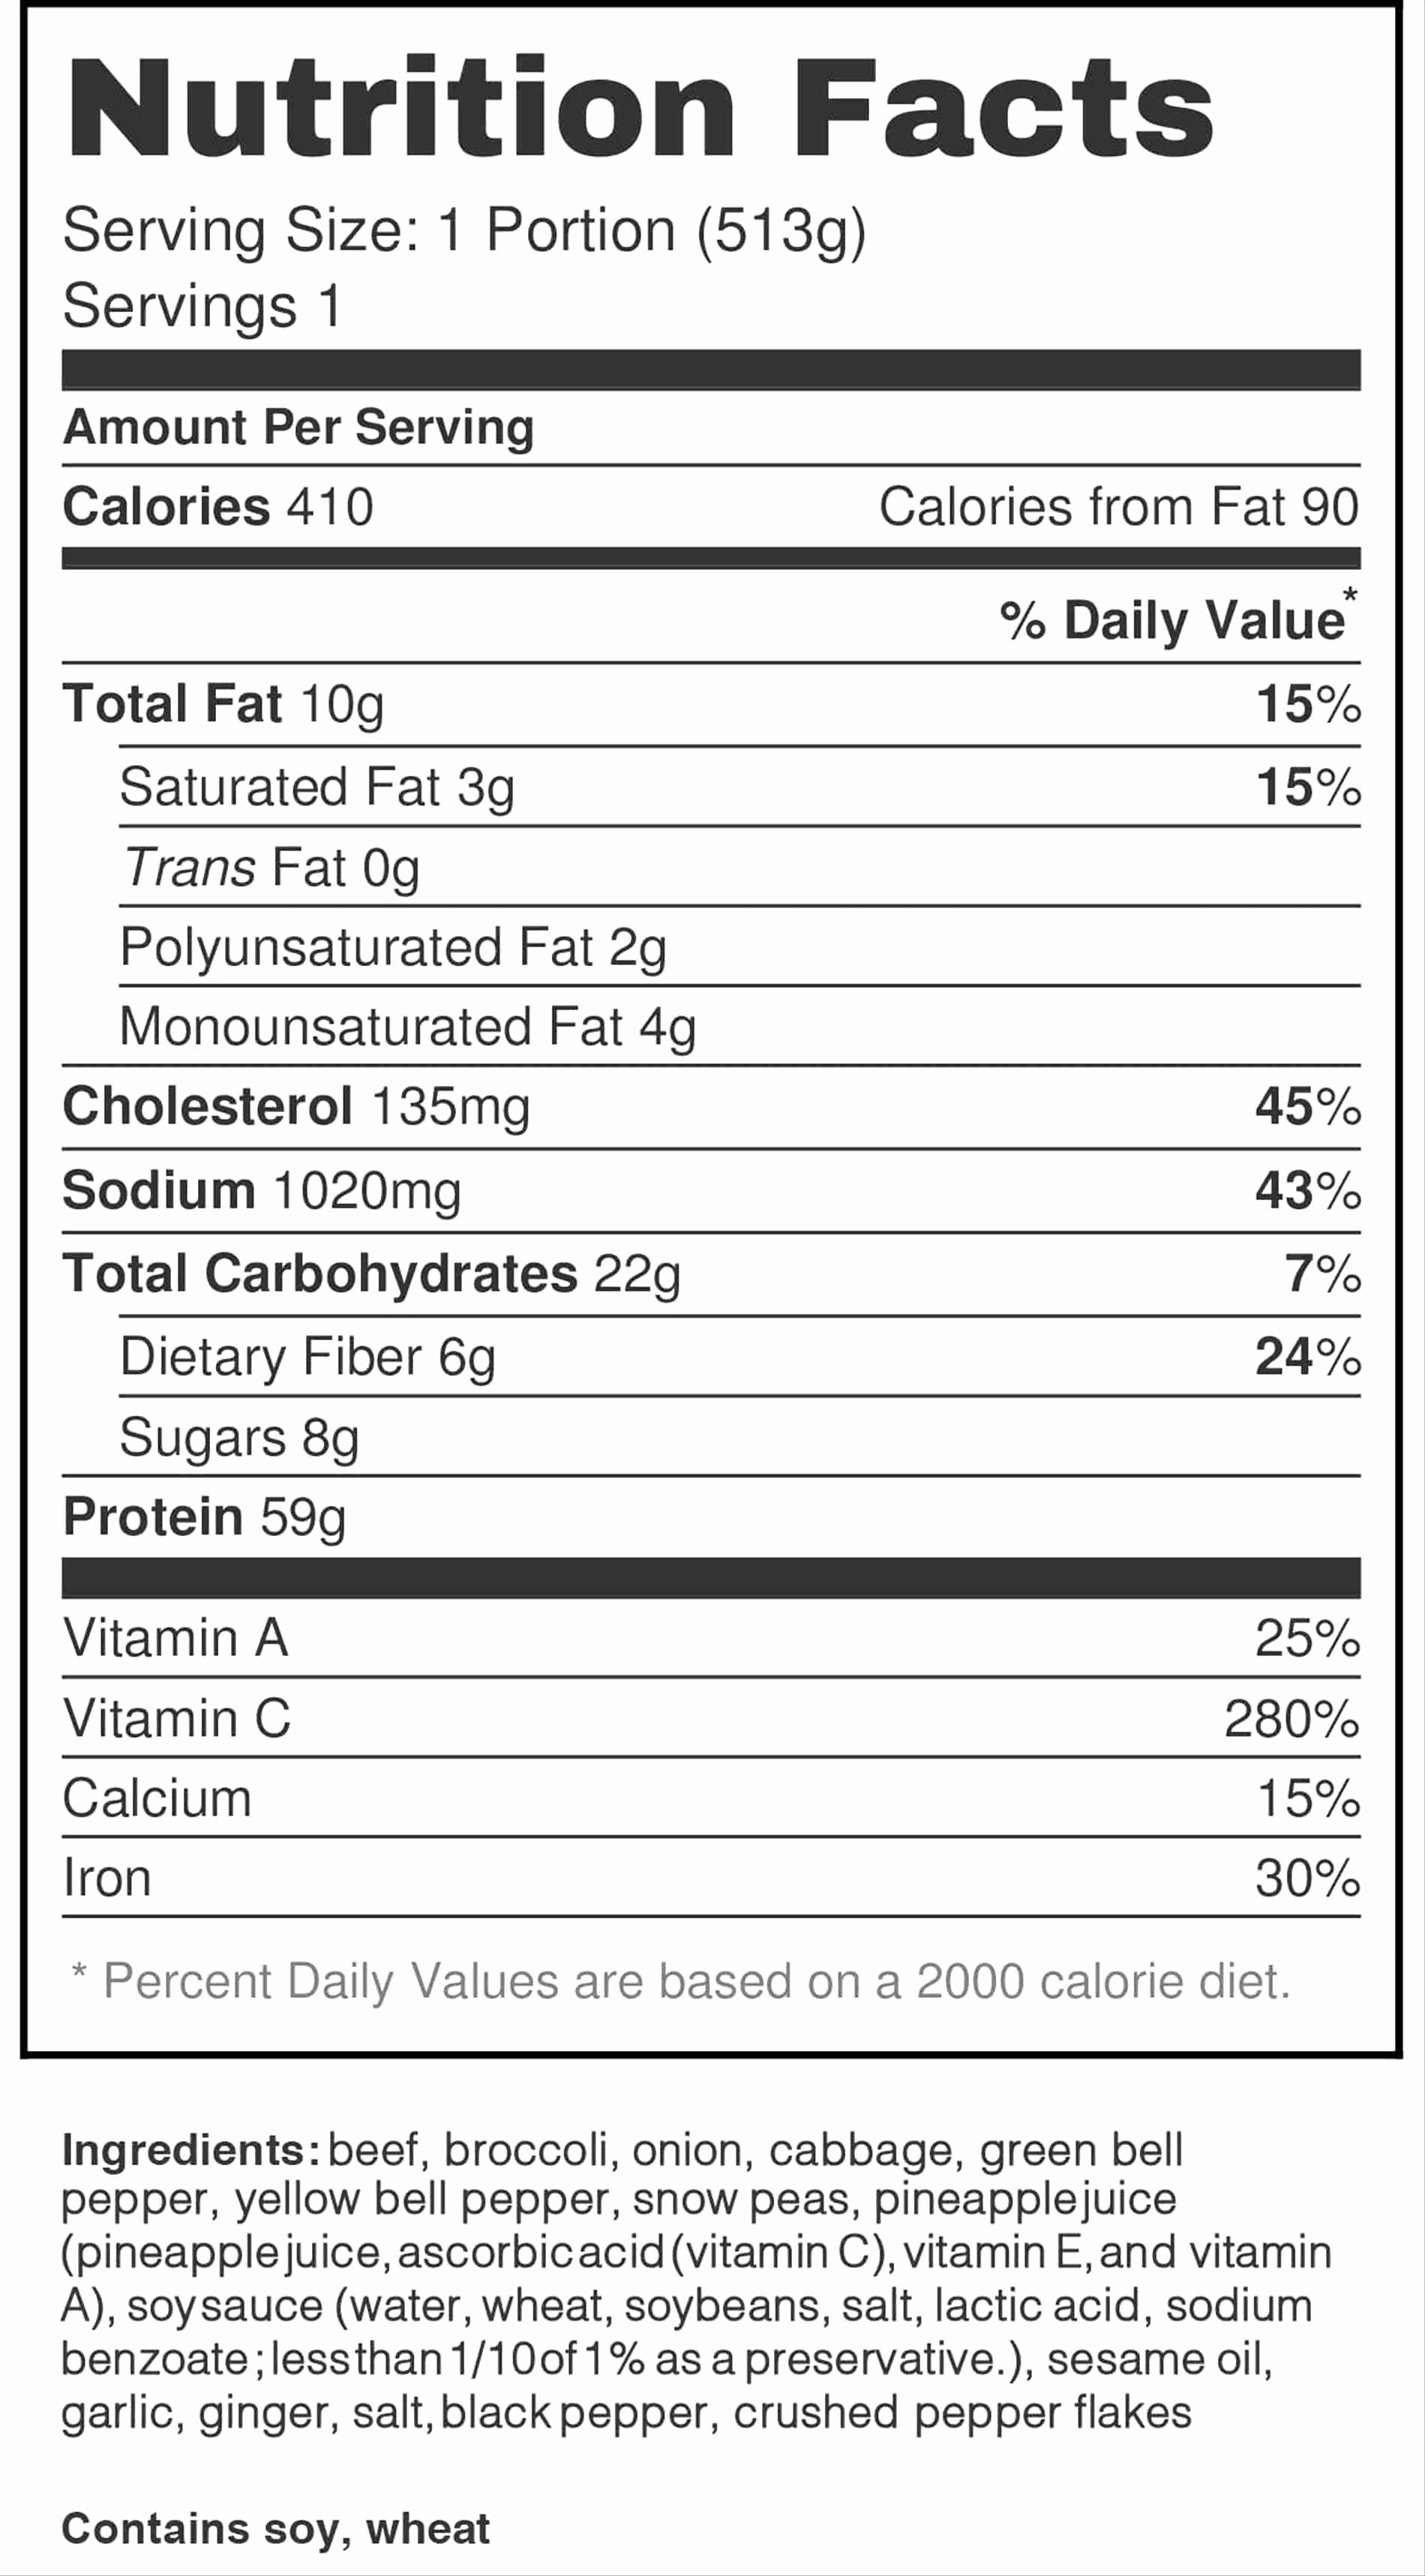 Nutrition Label Template Excel Hola Klonec